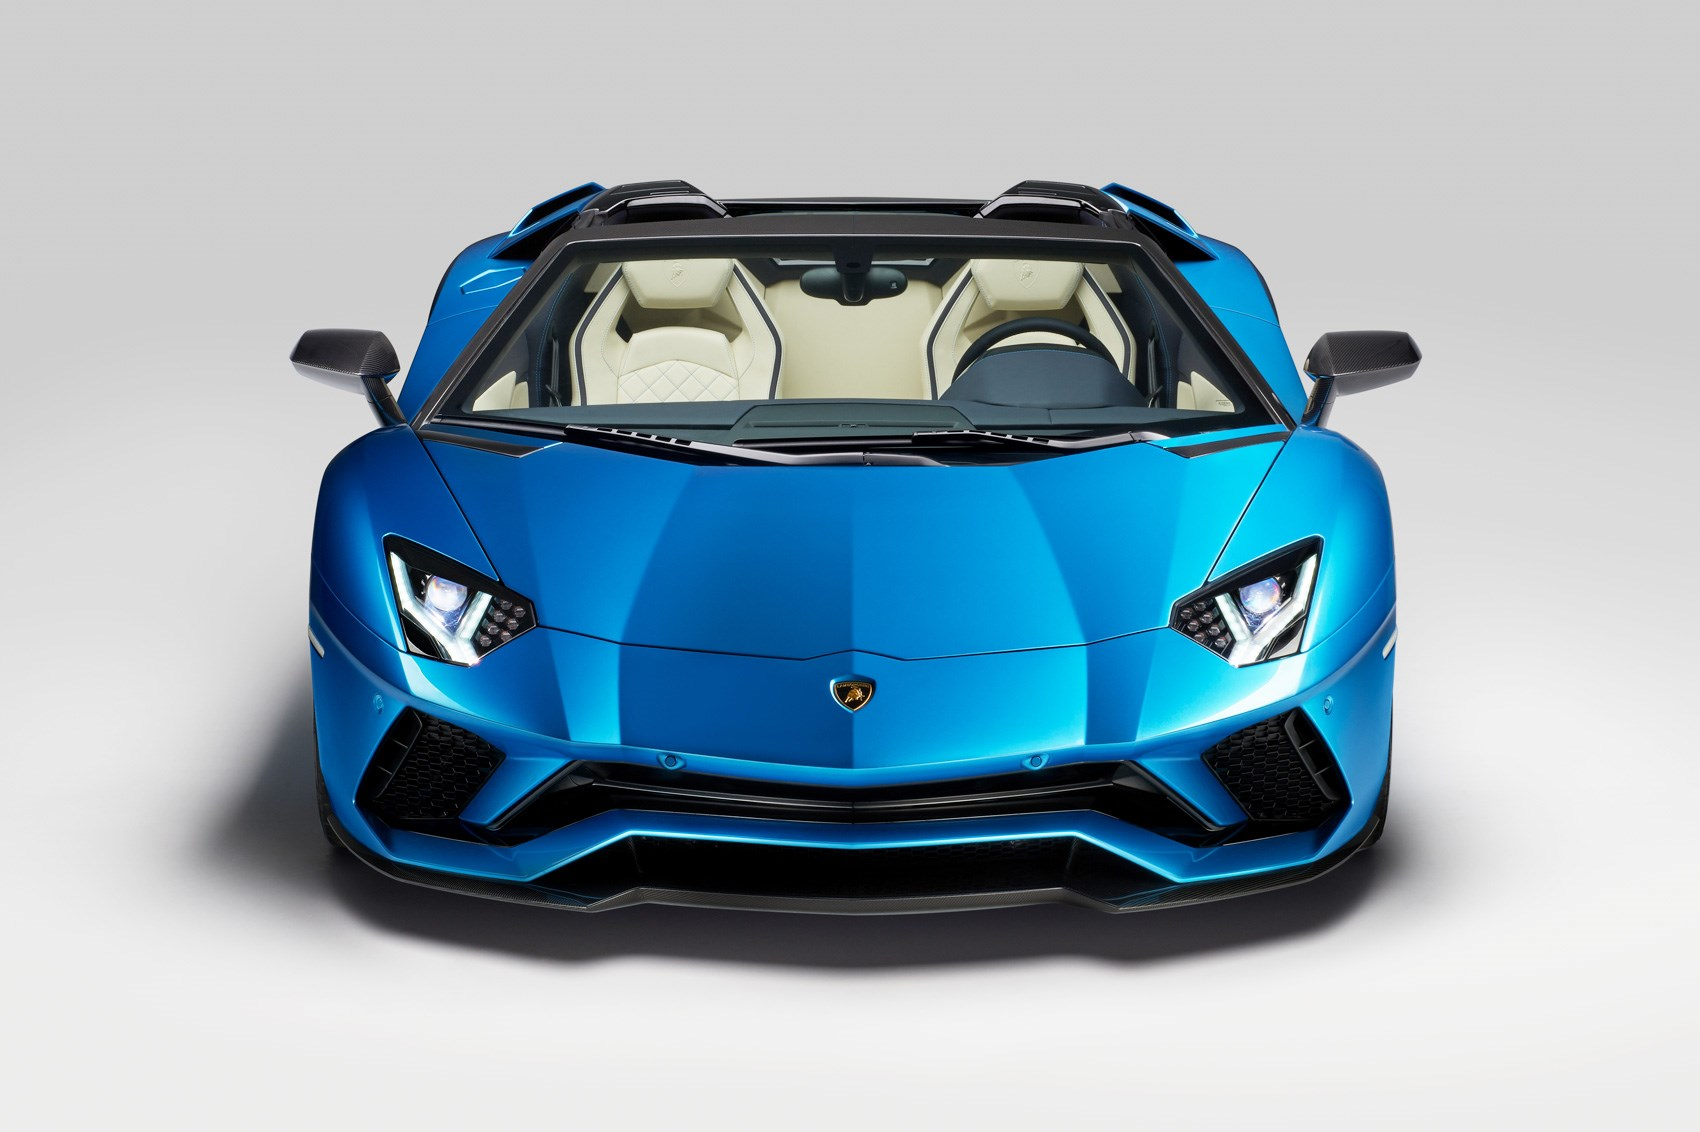 lamborghini aventador s roadster at 2017 frankfurt motor show pictures prices specs by car. Black Bedroom Furniture Sets. Home Design Ideas